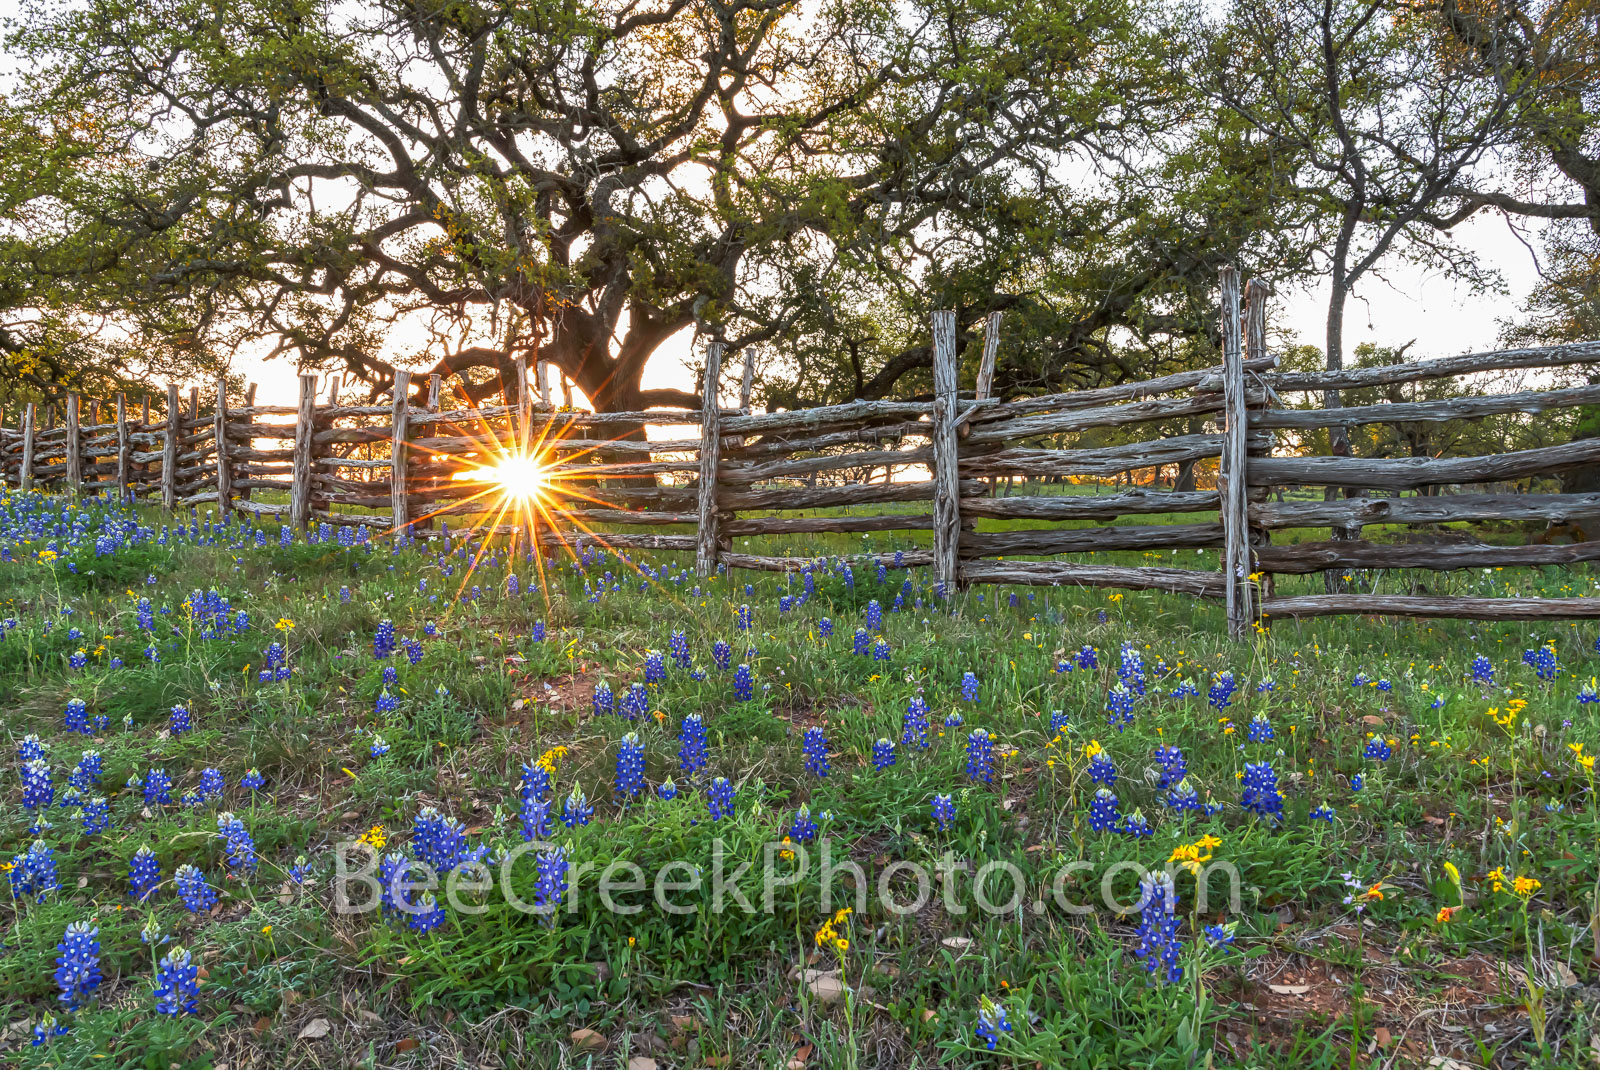 Bluebonnet Sunset at the Fence 2 - Another capture of this wood fence with bluebonnets, the oak tree at sunset which creates...